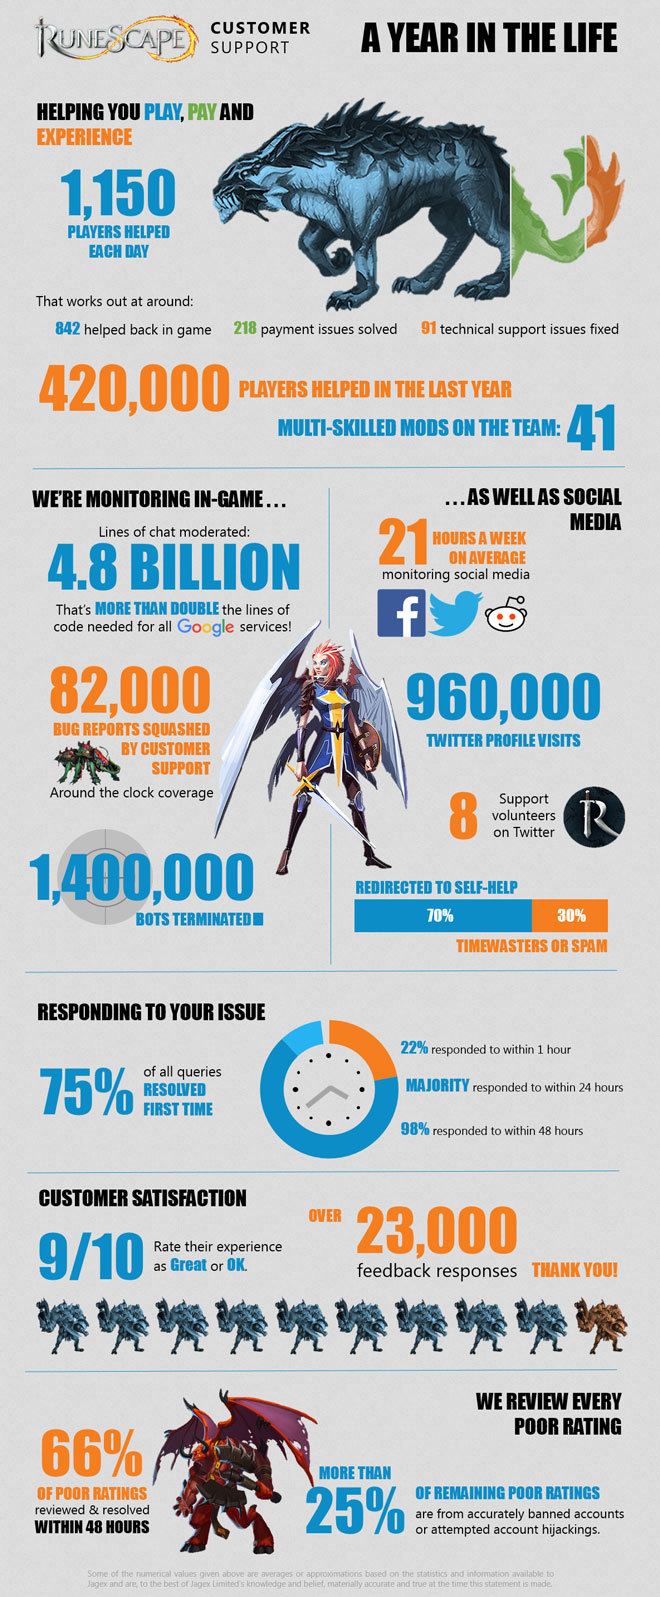 Customer Support week infographic news image